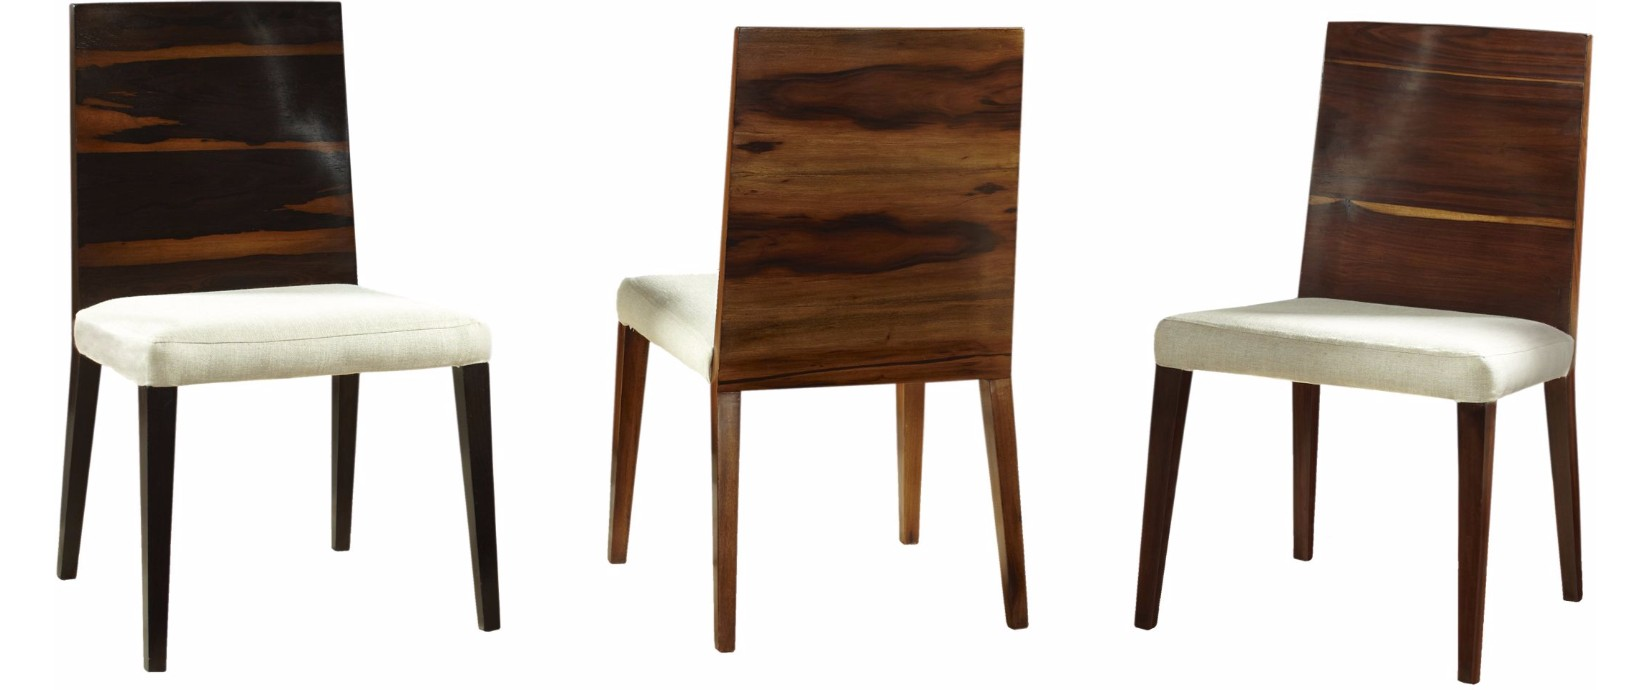 modernist chair – taracea - modmodernistchair